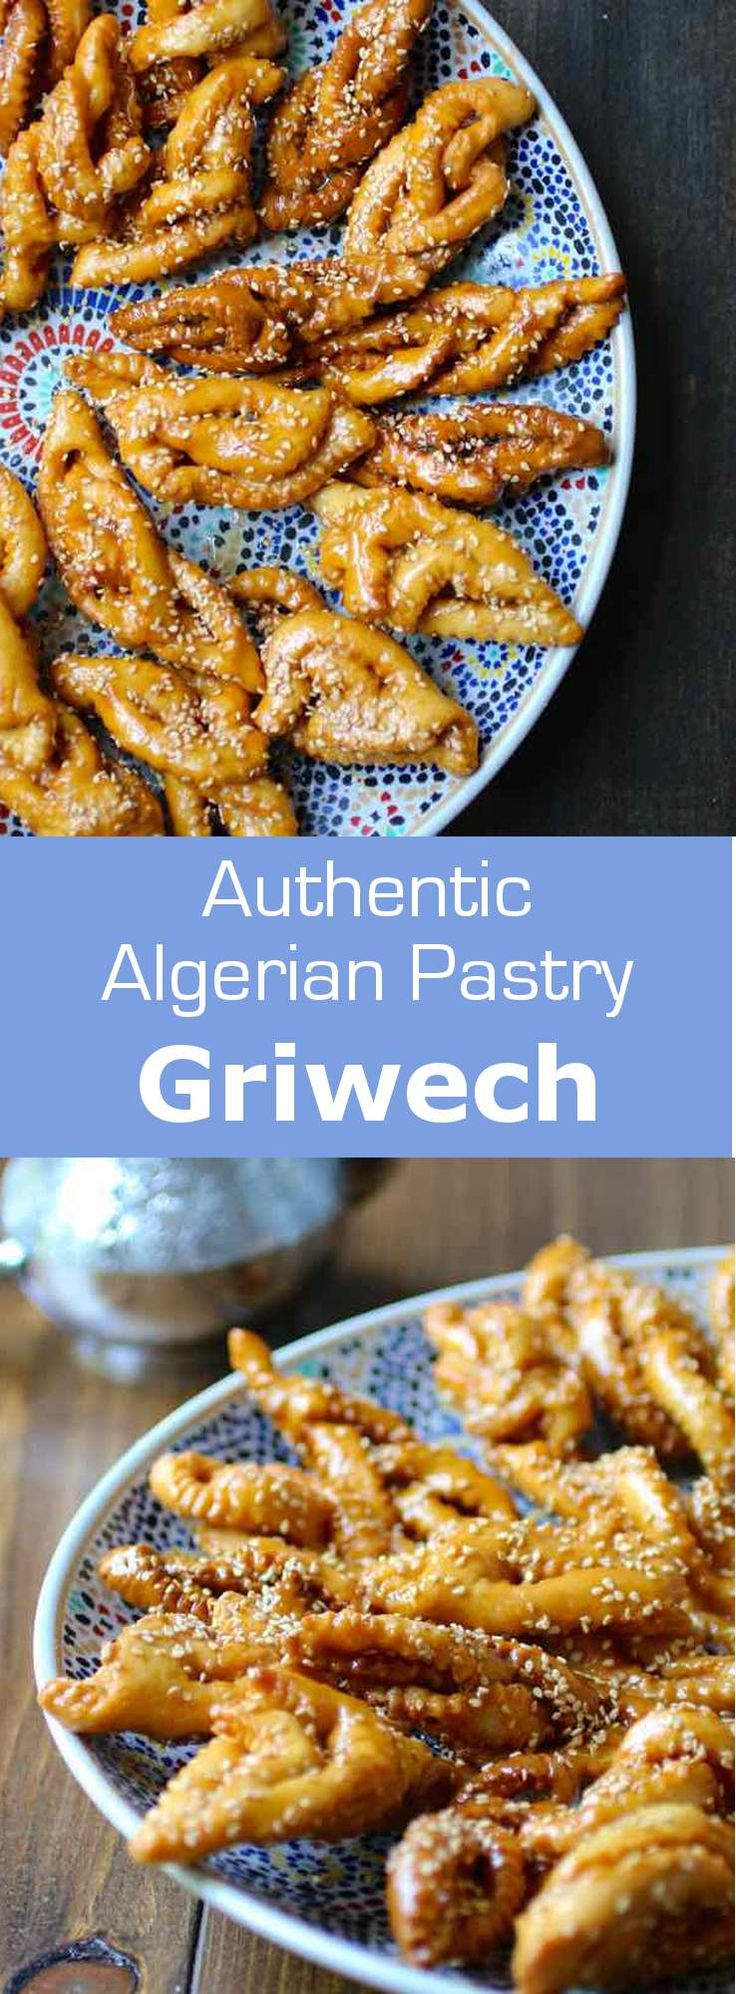 Griouech, also called chebakia is a North African pastry which may be presented in various shapes and is coated with honey and sesame seeds. #algeria #morocco #196flavors